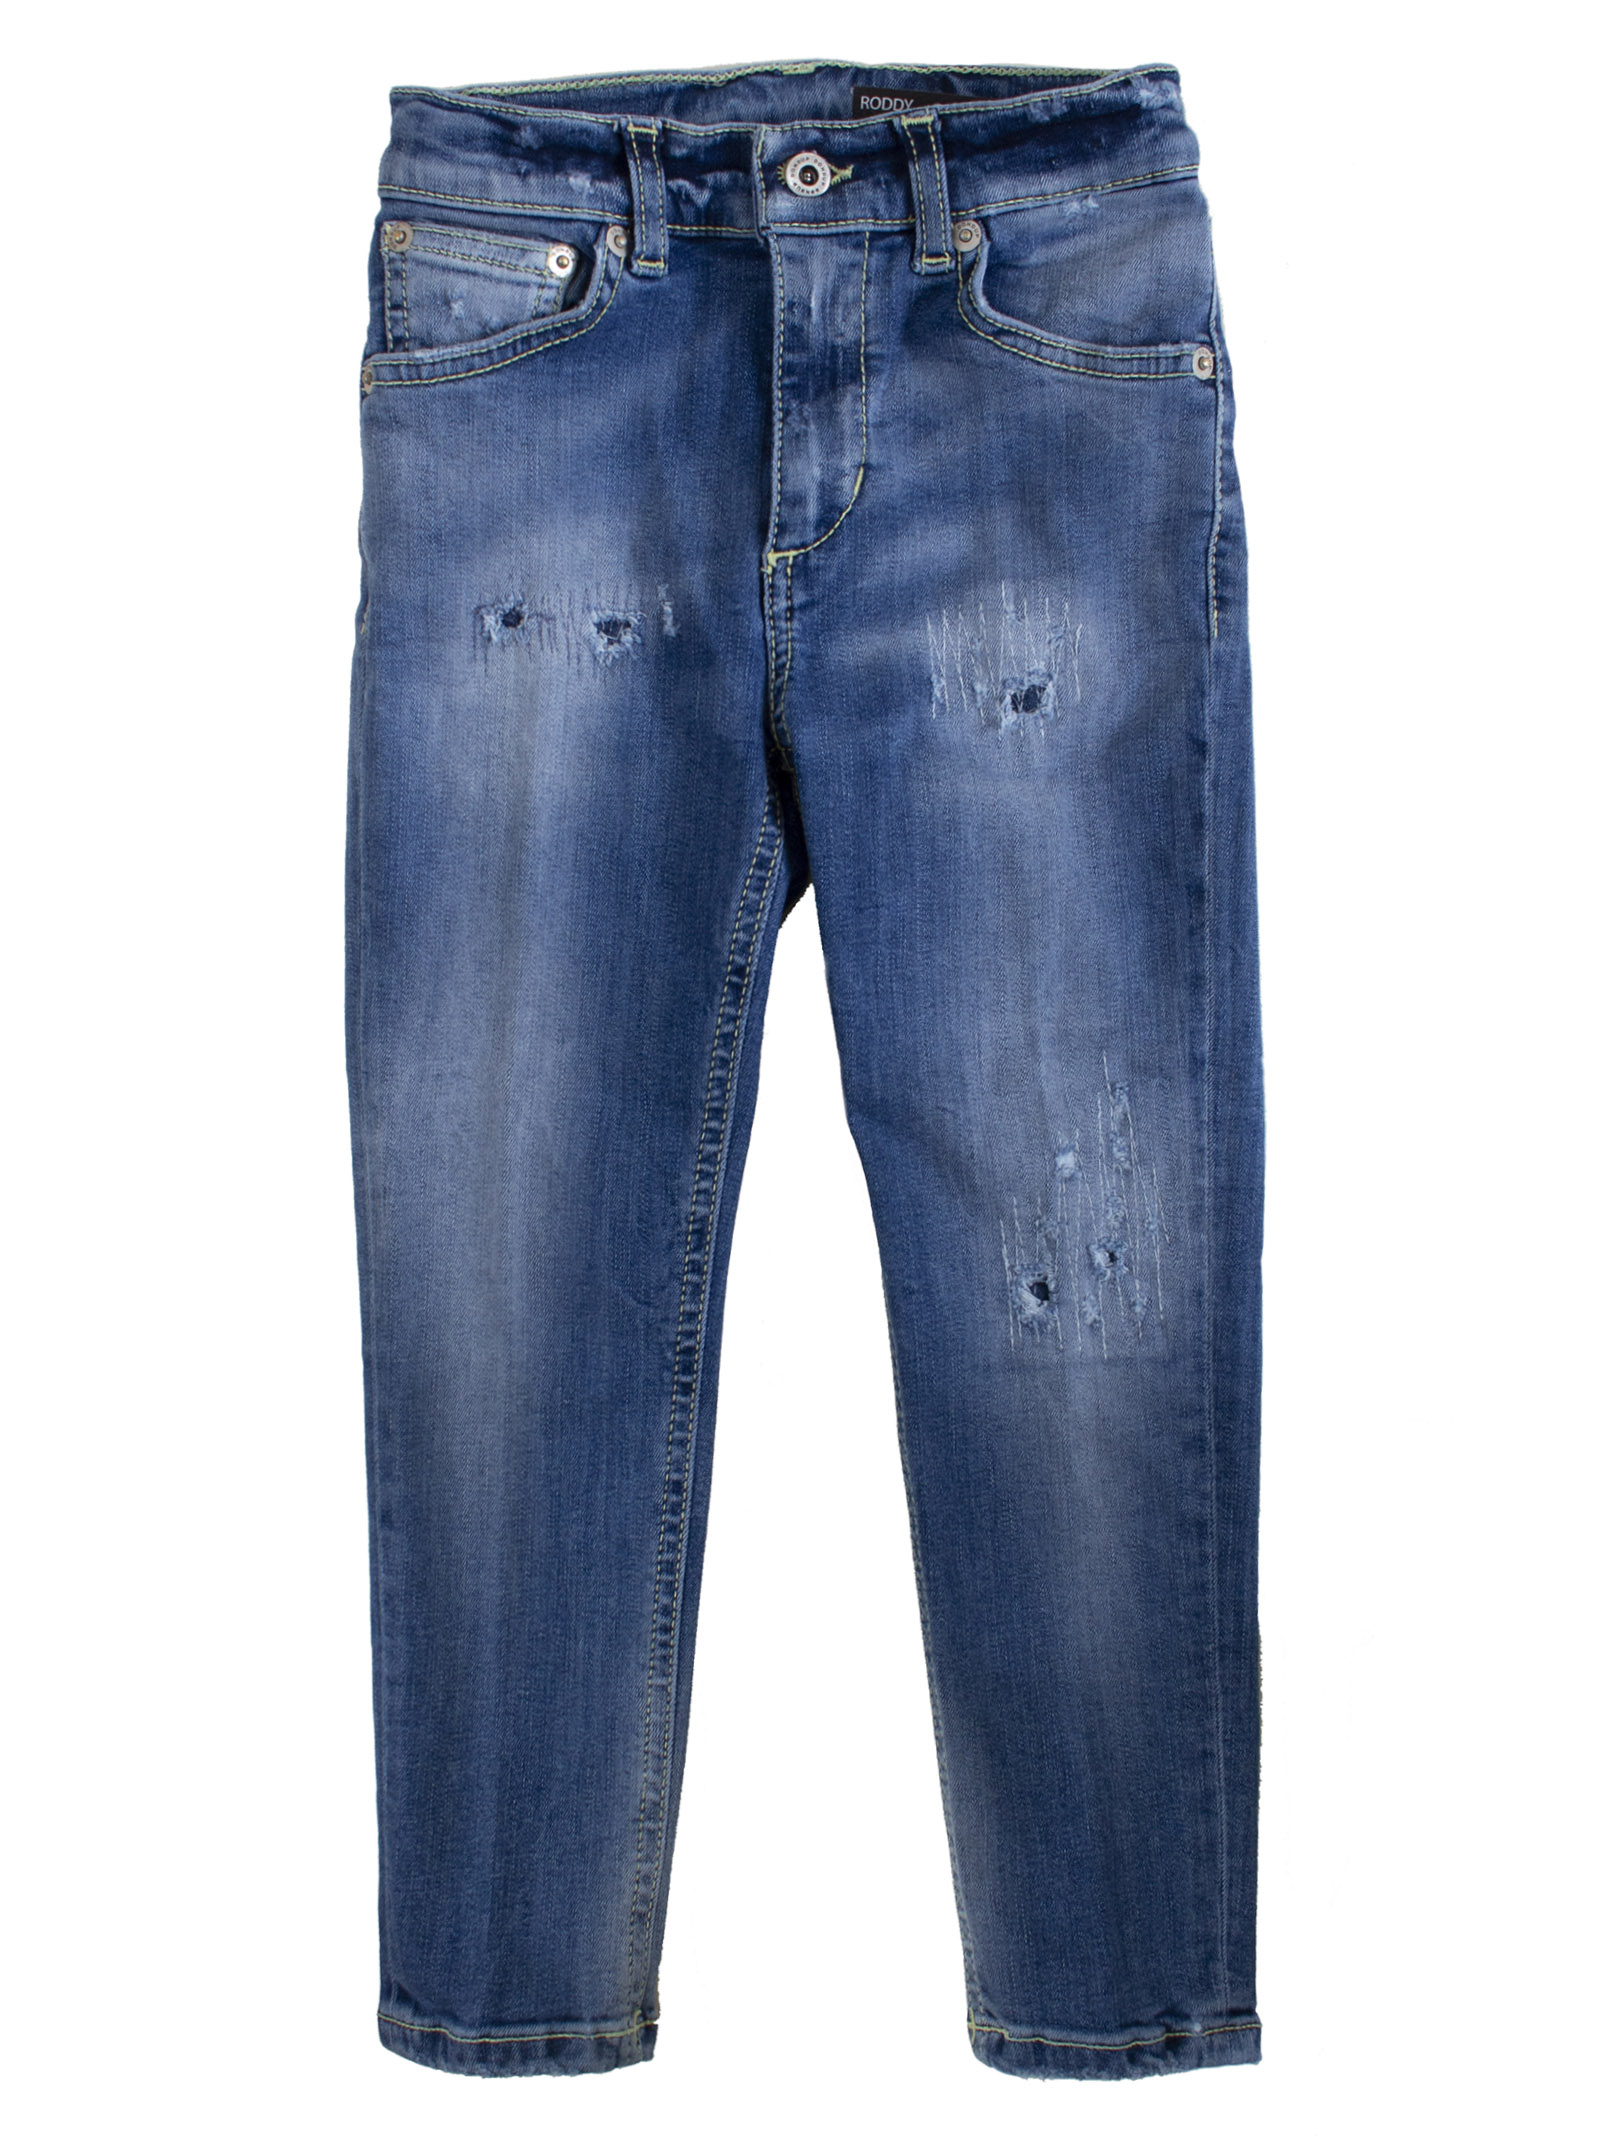 lowest price b4910 21503 Baby jeans